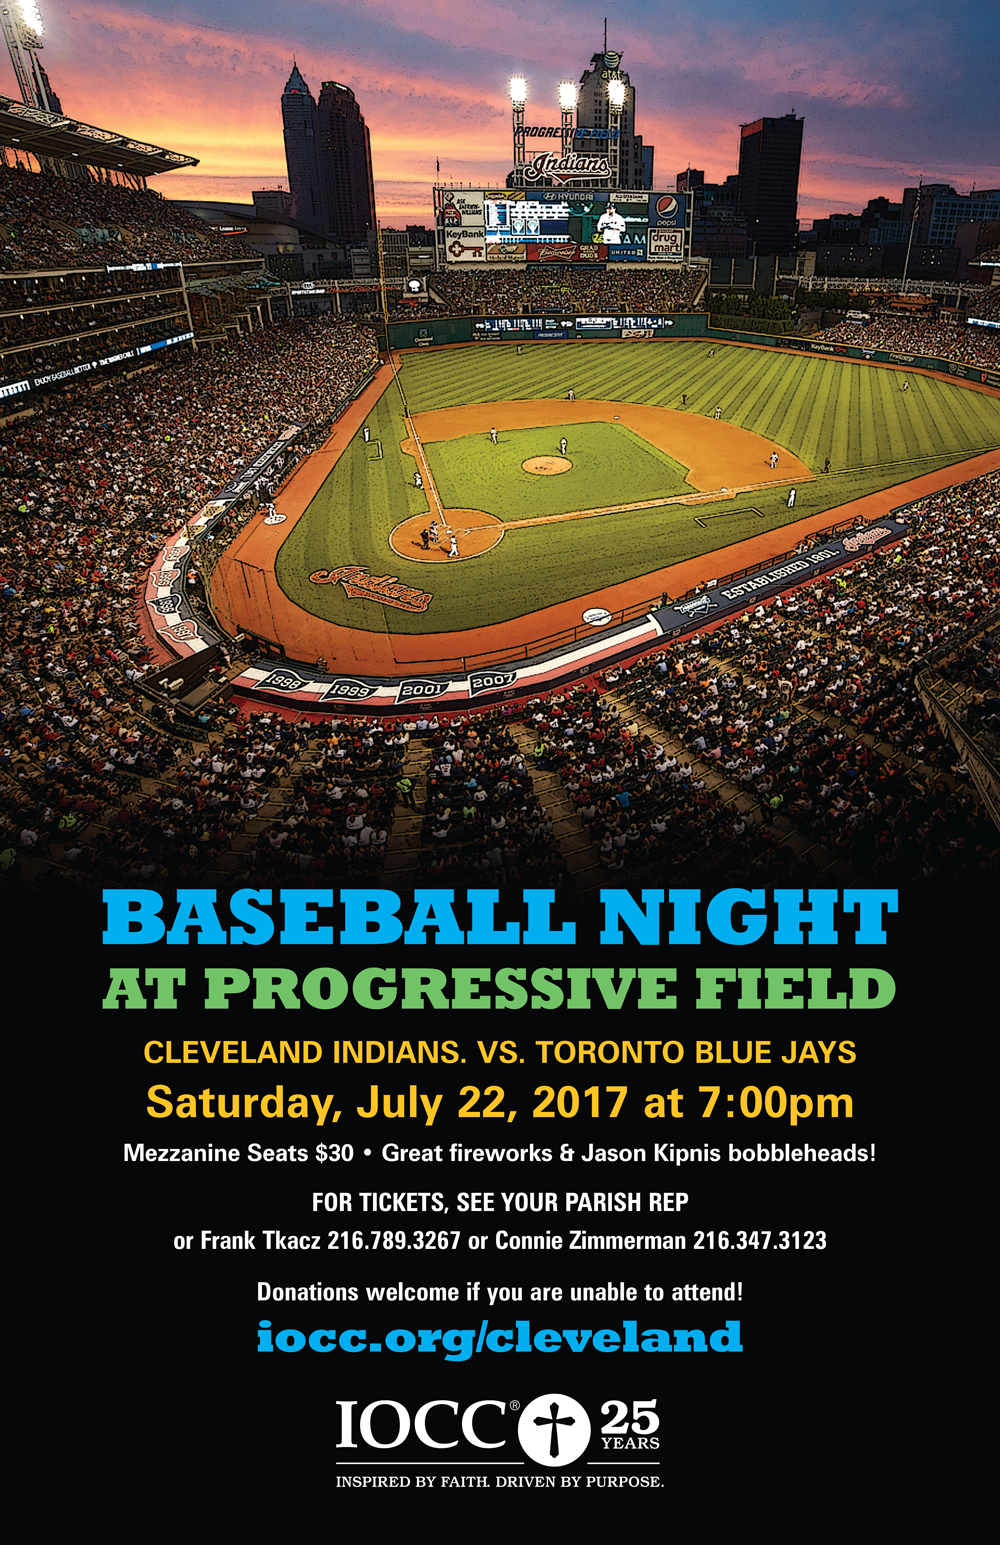 cleveland-indians-baseball7-22-17poster2.png